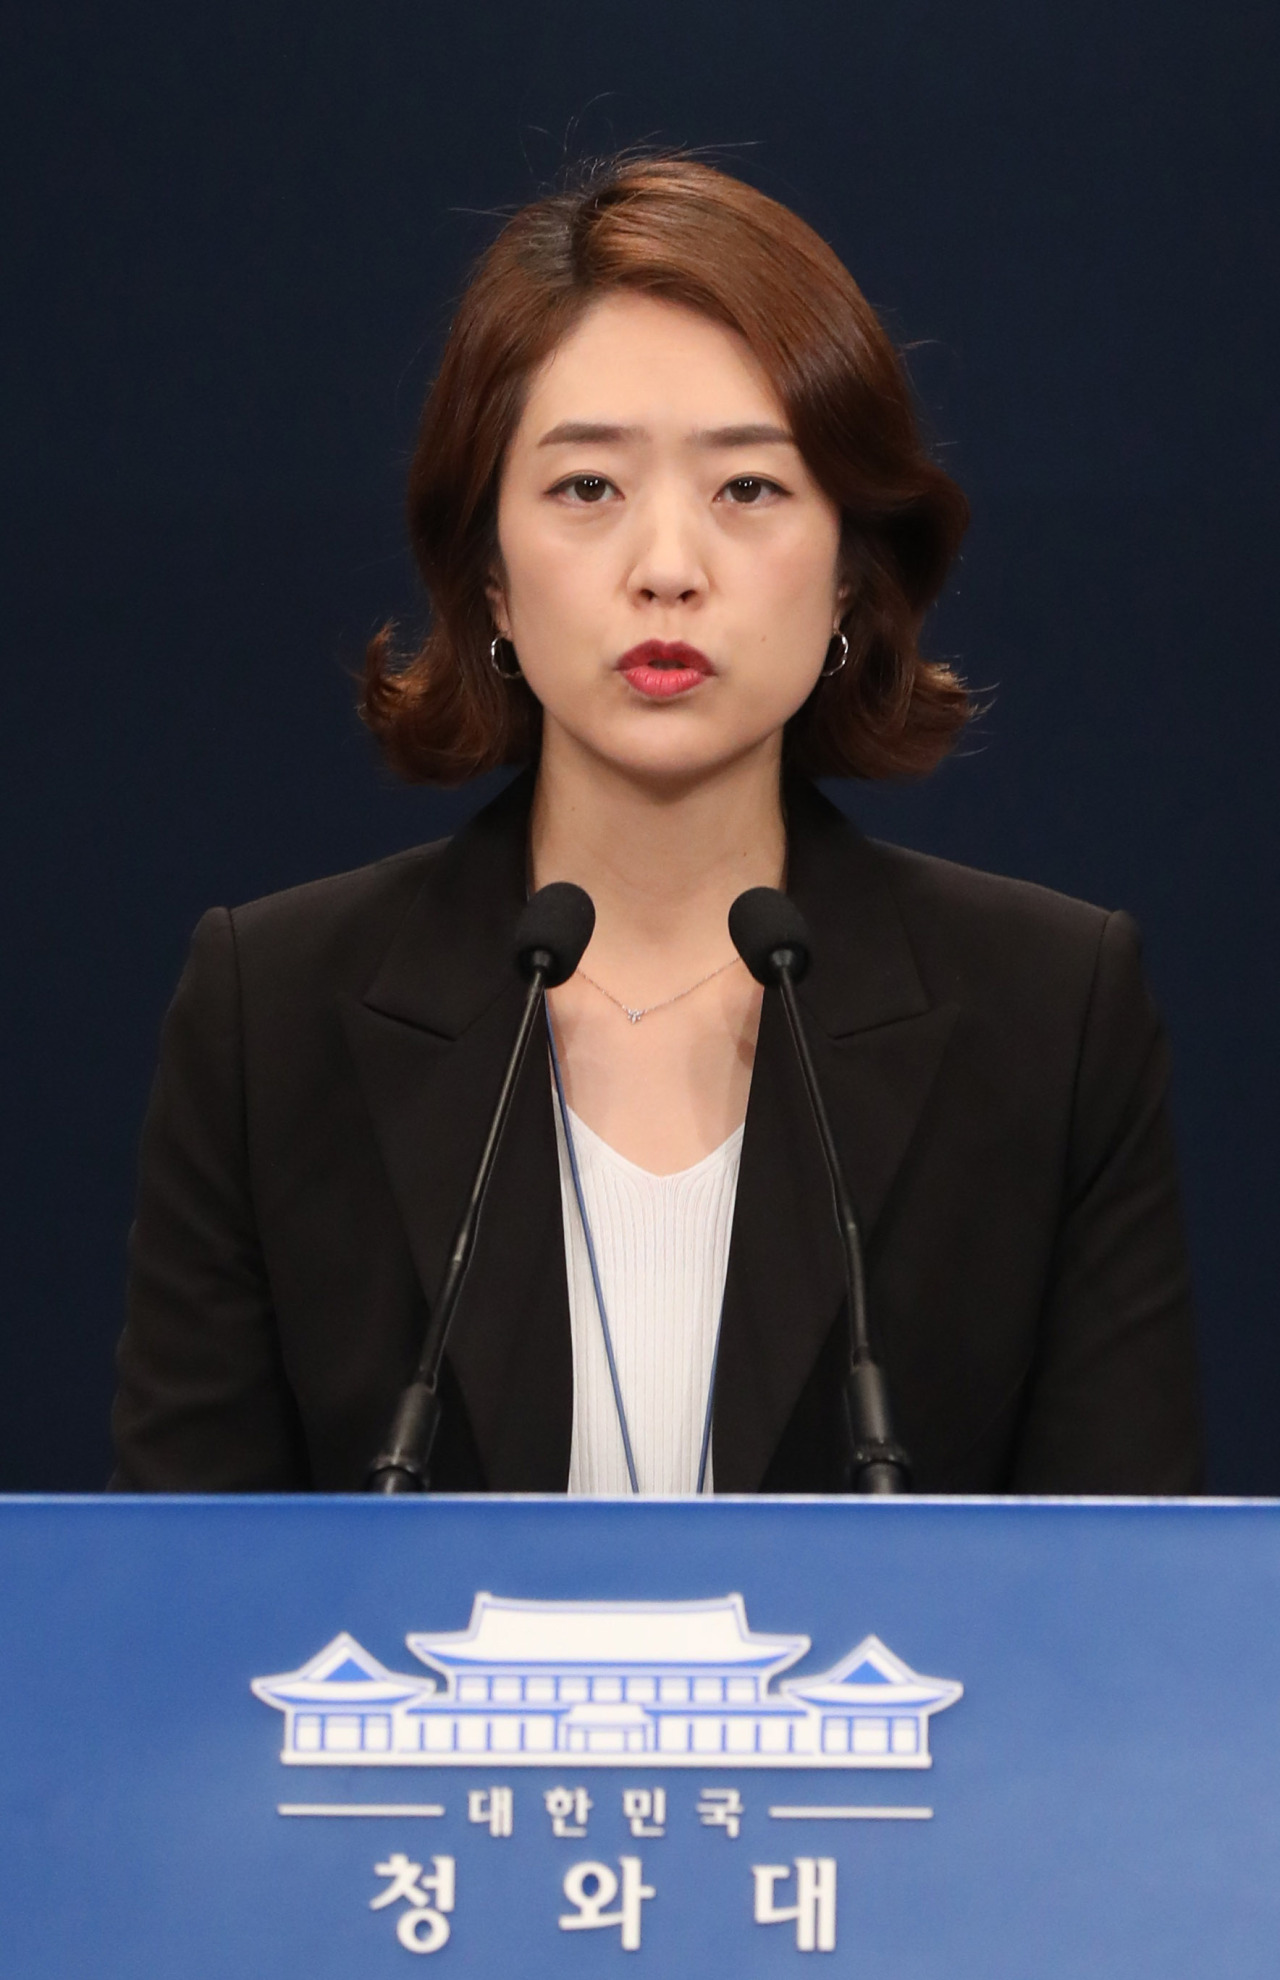 Cheong Wa Dae spokesperson Ko Min-jung at a press briefing on Wednesday (Yonhap)